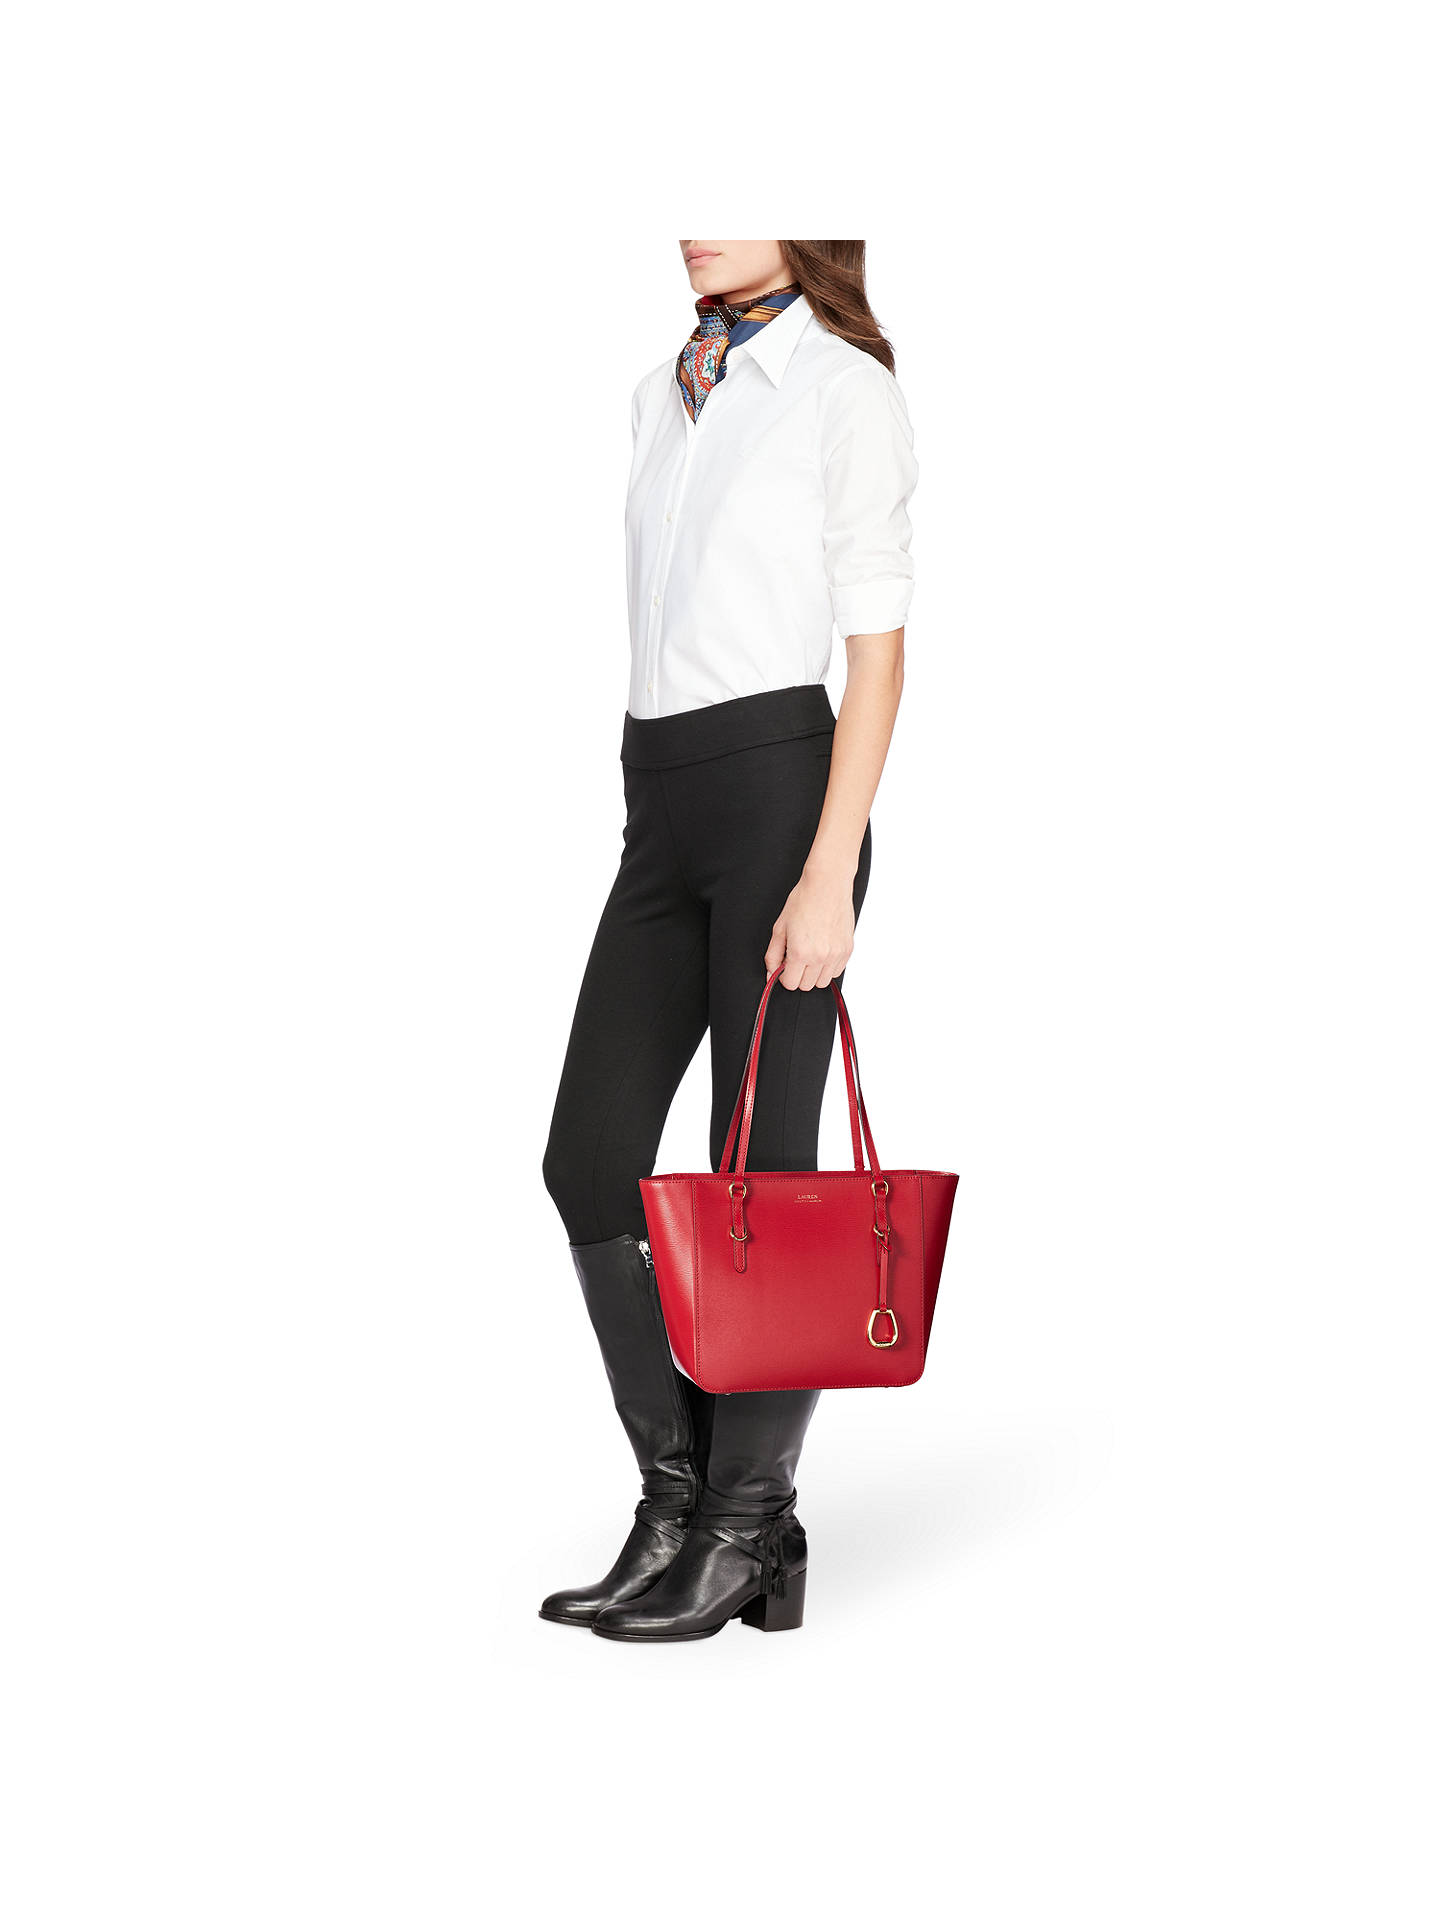 2cce1a351cd ... BuyLauren Ralph Lauren Saffiano Leather Shopper Tote Bag, Red Online at  johnlewis.com